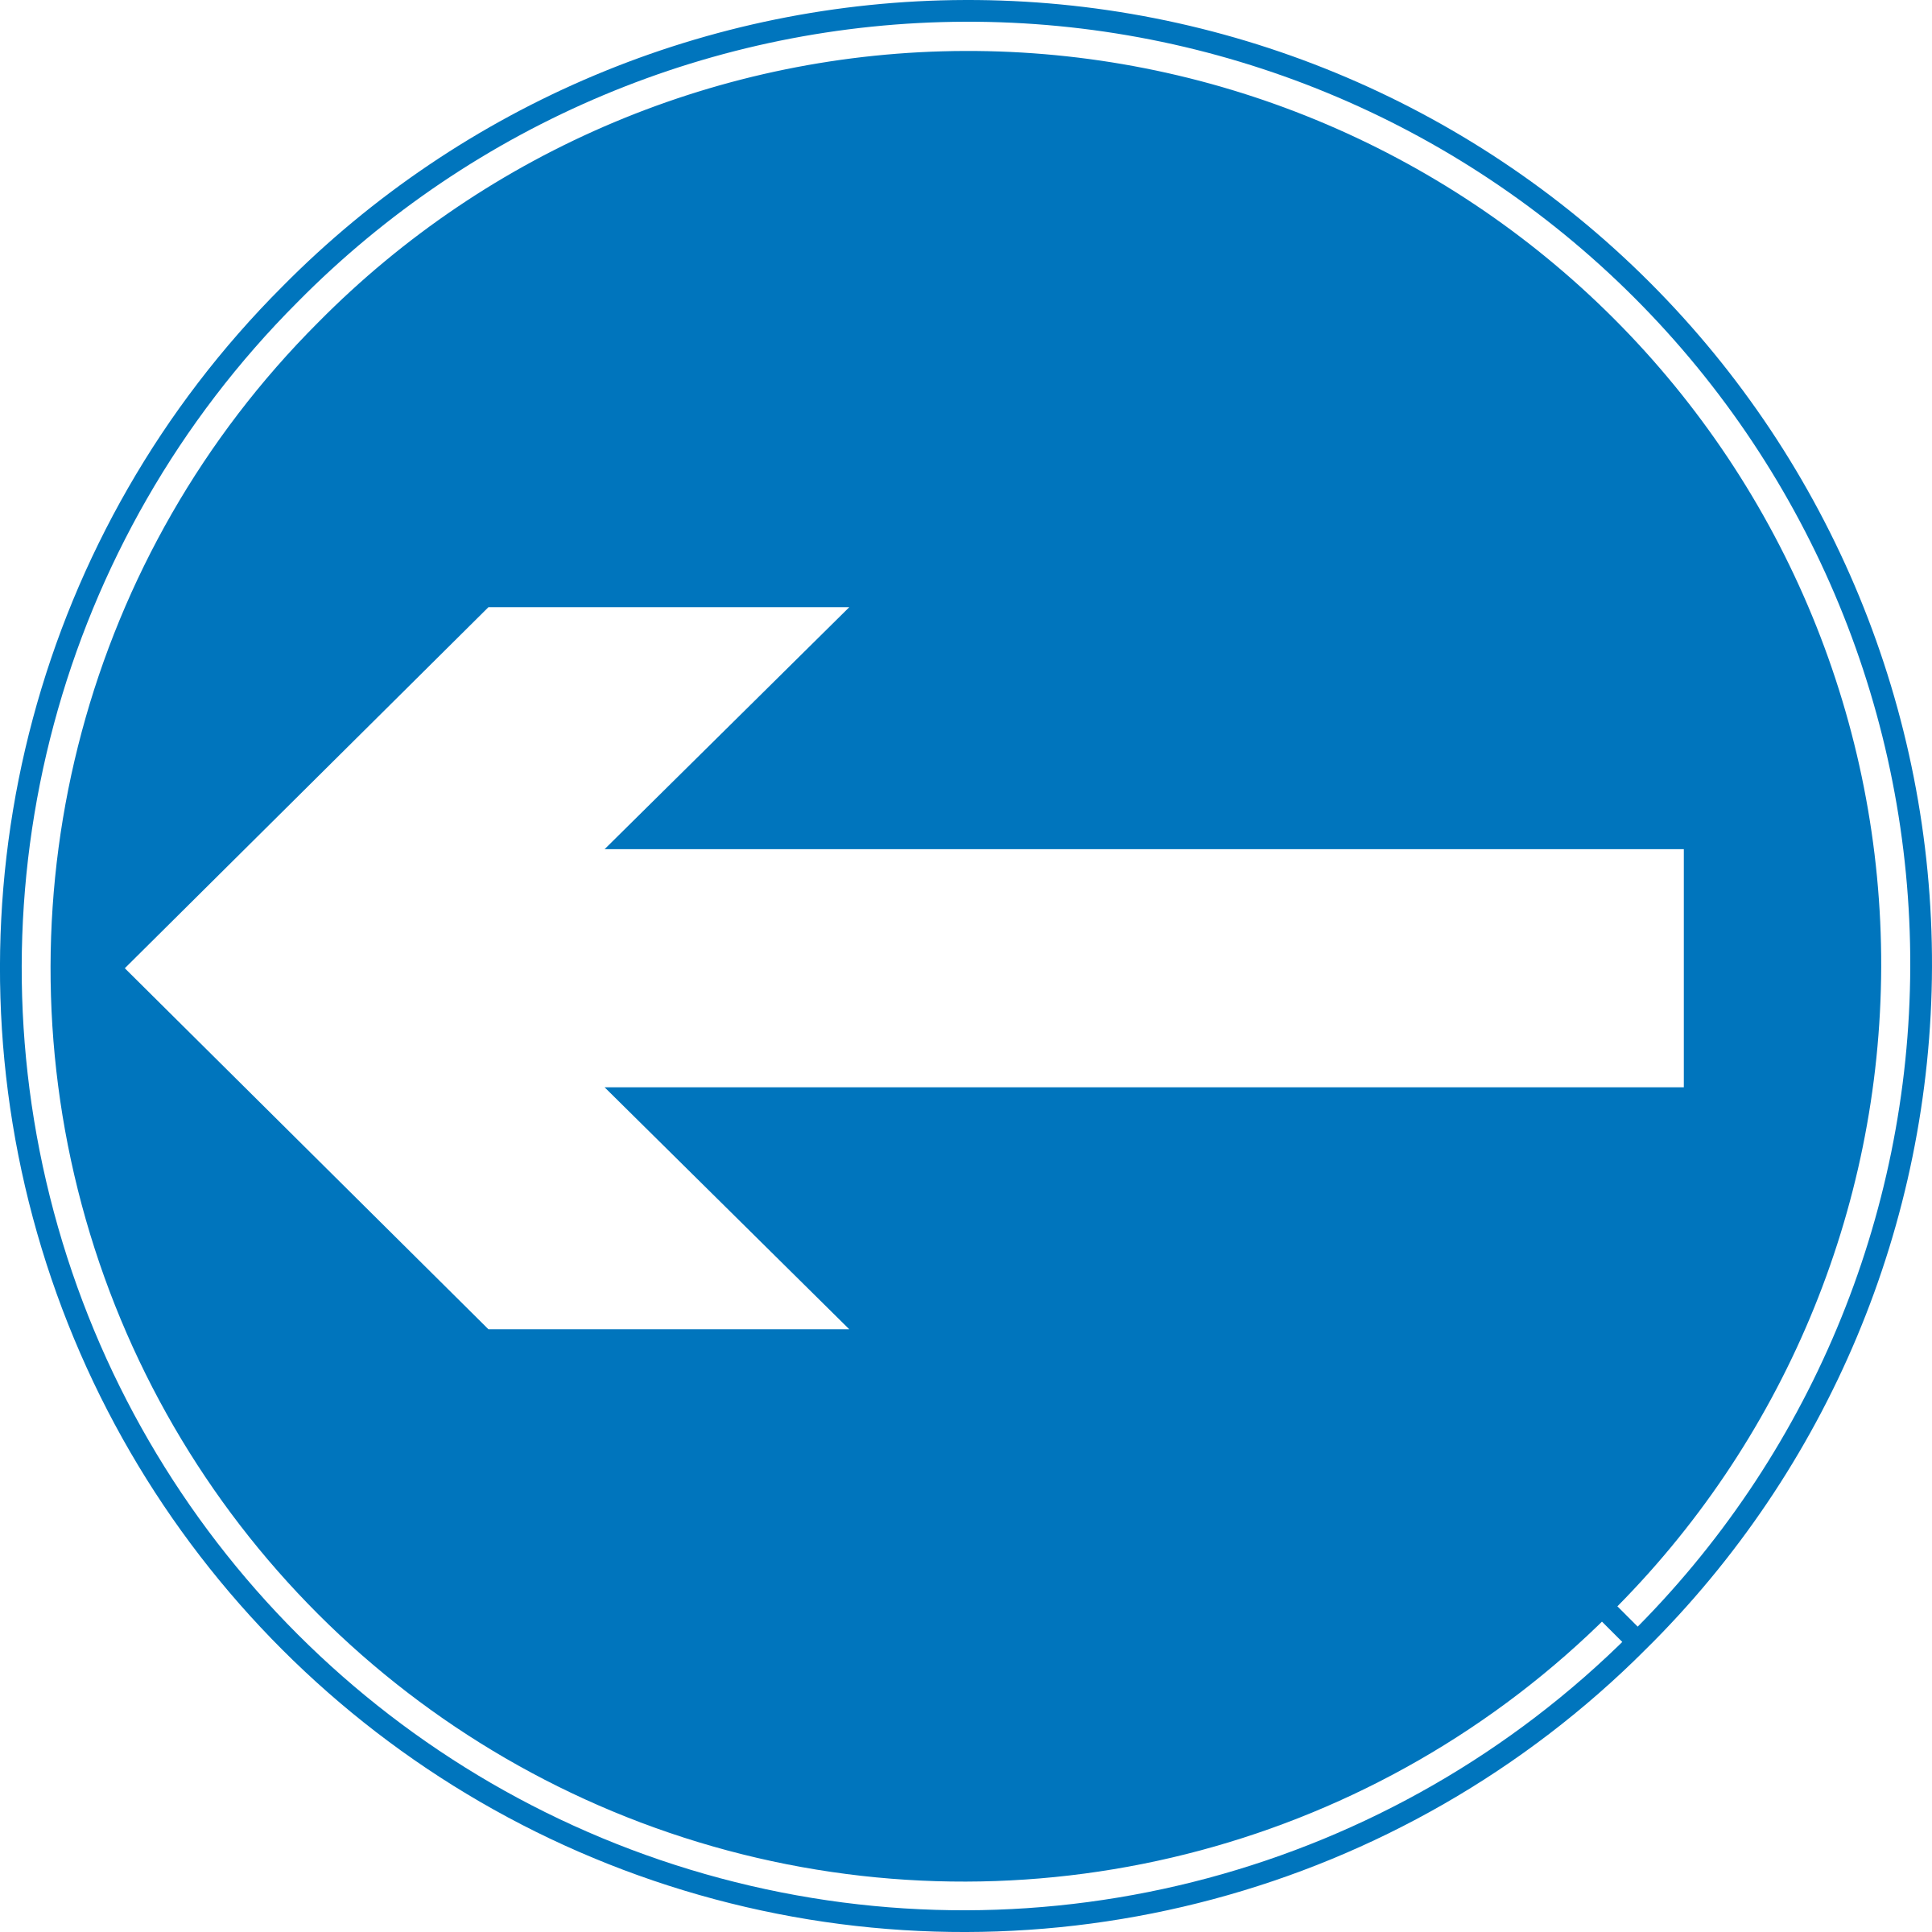 Roadsign turn left by Simarilius